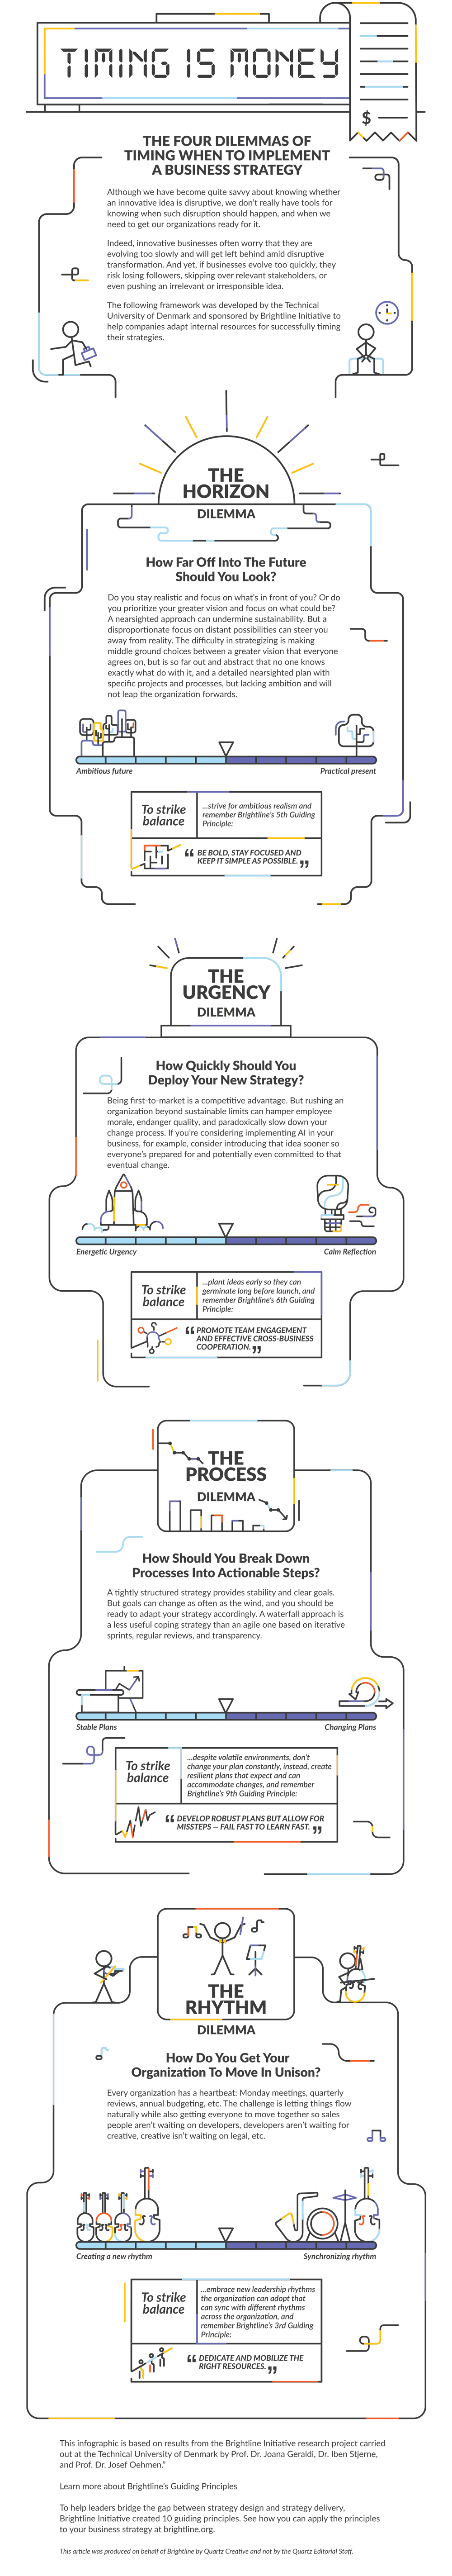 Timing Is Money Brightline Initiative Create Diagram Download Infographic